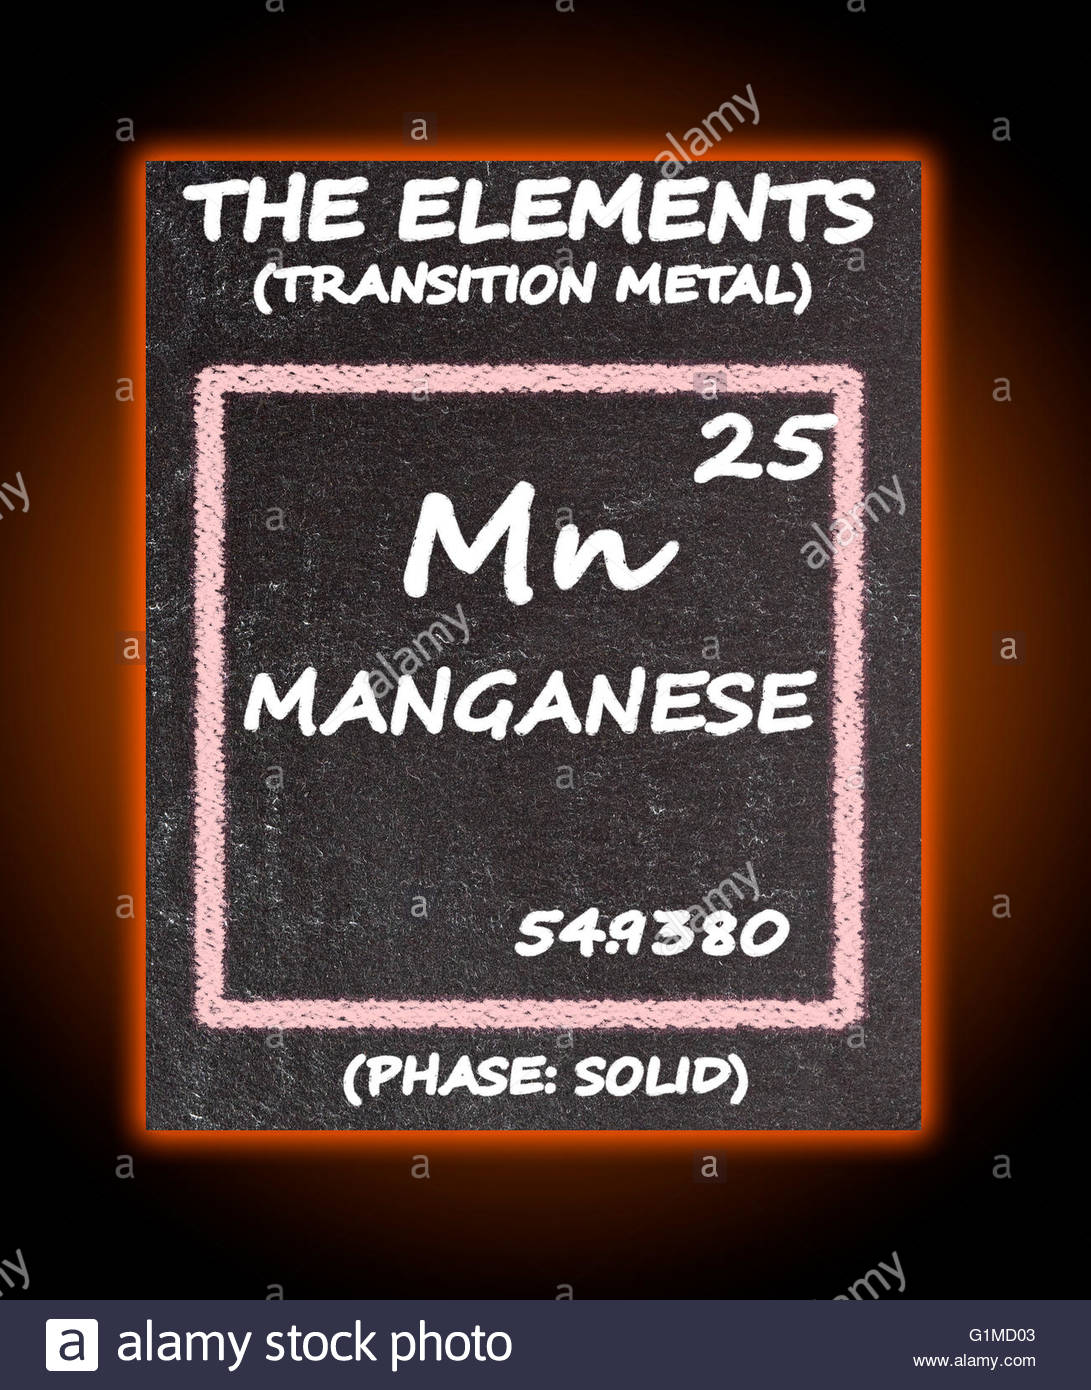 Manganese on periodic table images periodic table images manganese on periodic table choice image periodic table images manganese on periodic table gallery periodic table gamestrikefo Images